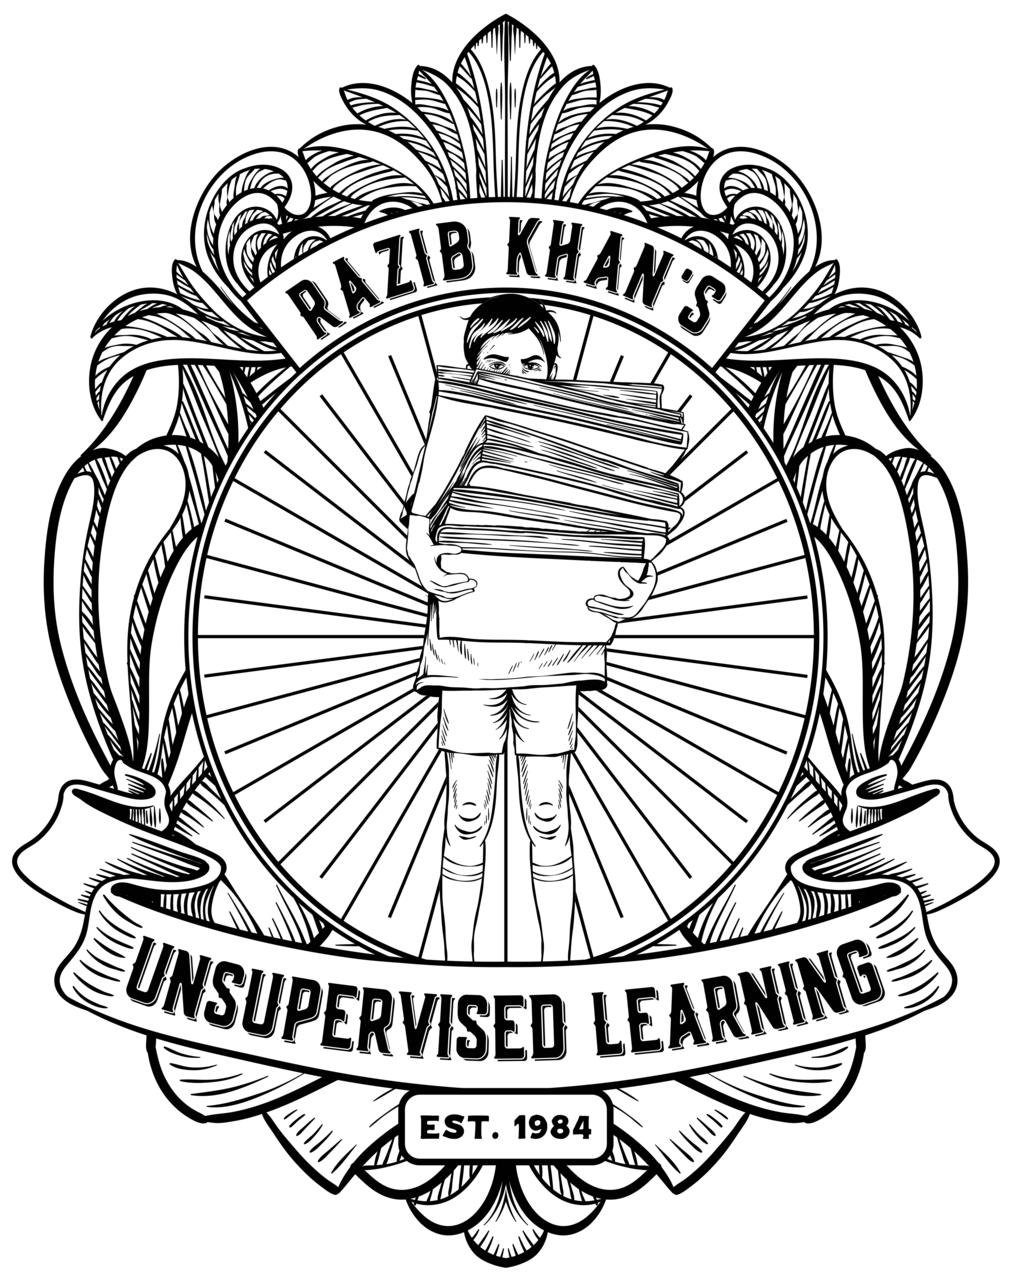 Razib Khan's Unsupervised Learning